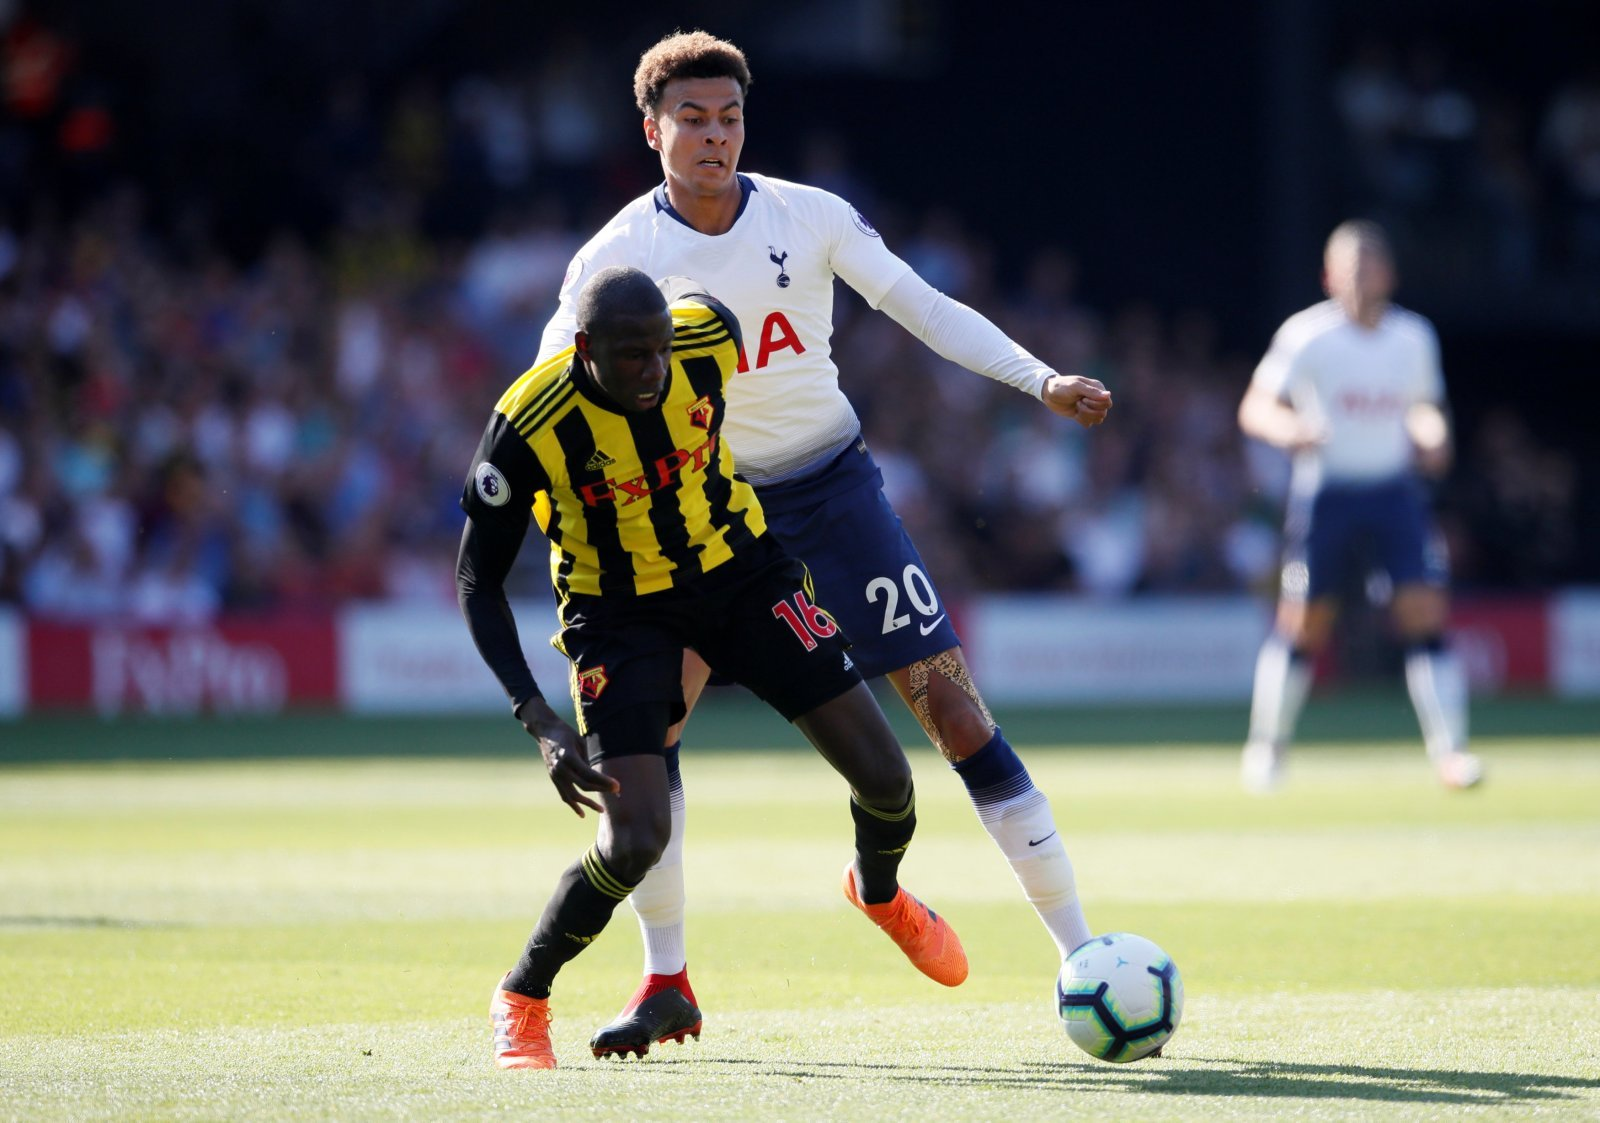 Wanyama out, squad quality bettered: Potential consequences of Tottenham's midfield swoop